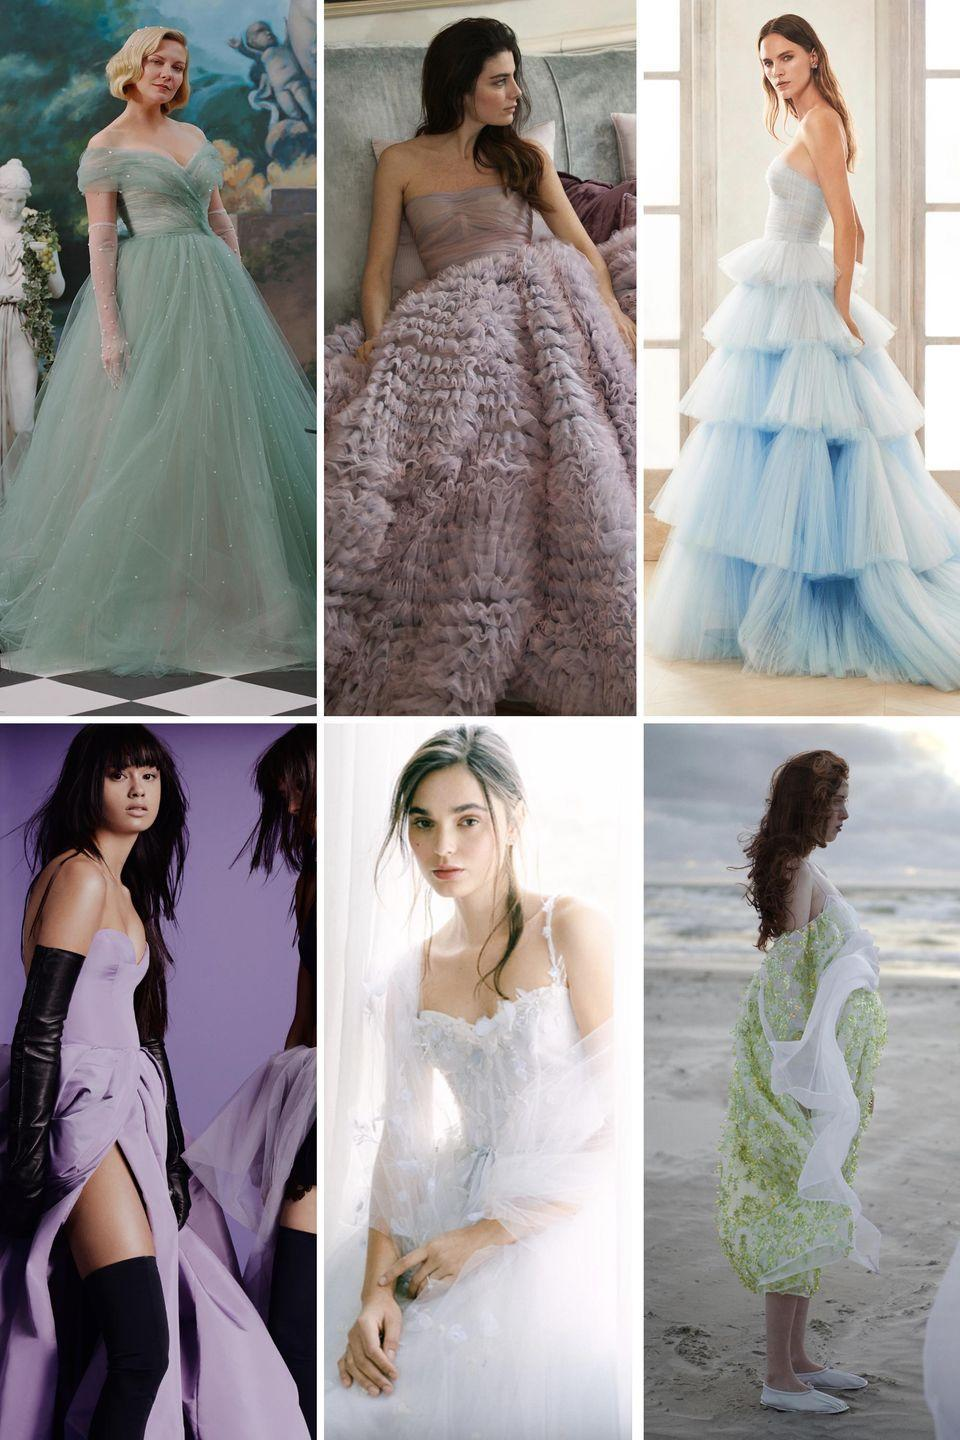 "<p>Blush was a trend ages ago; then, it became a mainstay for the aisle, followed by shades of ginger and champagne. Now, we're seeing cooler shades of pistachio, dove, lavender, and sky blue in all forms, from full ball gowns to flirty frocks. </p><p>Vera Wang, Monique Lhuillier, and Oscar de la Renta lead the cool tone charge; Wang showed lavender this season (along with touches of red and black, but more on those later), while Lhuiller's dove-toned gown joined the ranks of the soft greens she's been showing as of late. Laura Kim and Fernando Garcia's ""something blue"" gown for Fall 2020 was an early sign of the watercolor wonders we saw on the 2021 runways. Seems as though these soft tones are here to stay for a feminine yet cool take on aisle-appropriate color.</p><p><em>Clockwise from left: Rodarte Spring 2020; Luisa Beccaria Spring 2021; Oscar de la Renta Bridal Fall 2020; Vera Wang Fall 2021; Monique Lhuillier Bridal Fall 2021; Cecilie Bahnsen Spring 2021.</em></p>"